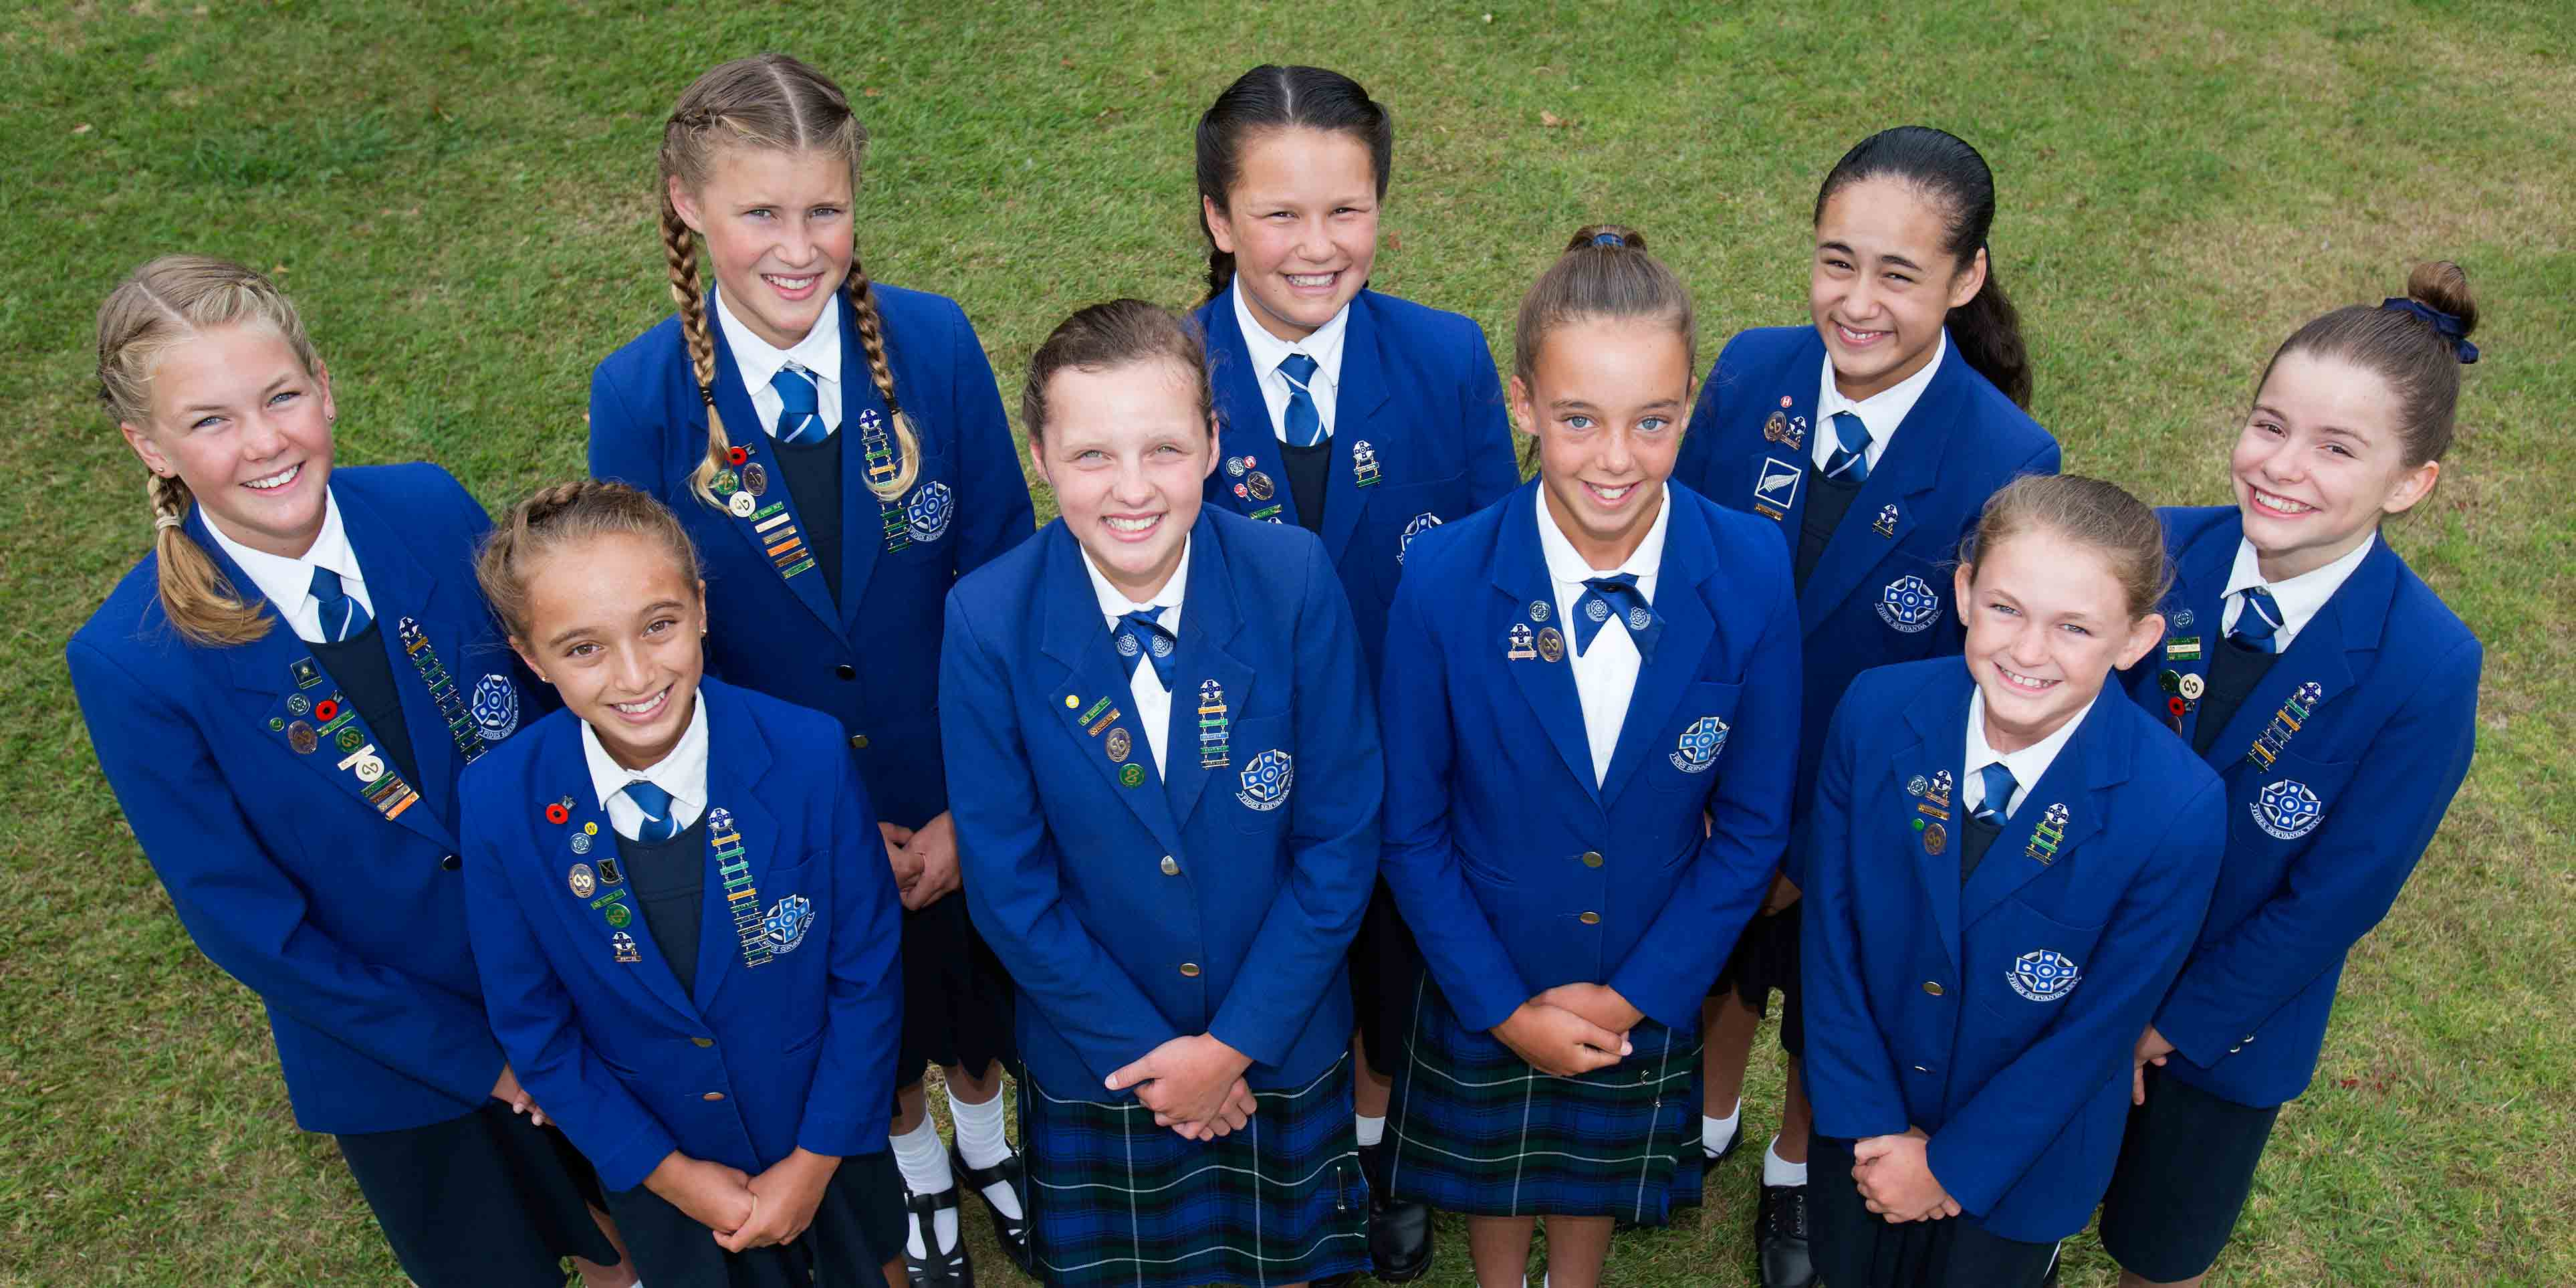 Saint-Kentigern-Girls'-School-Apply.jpg